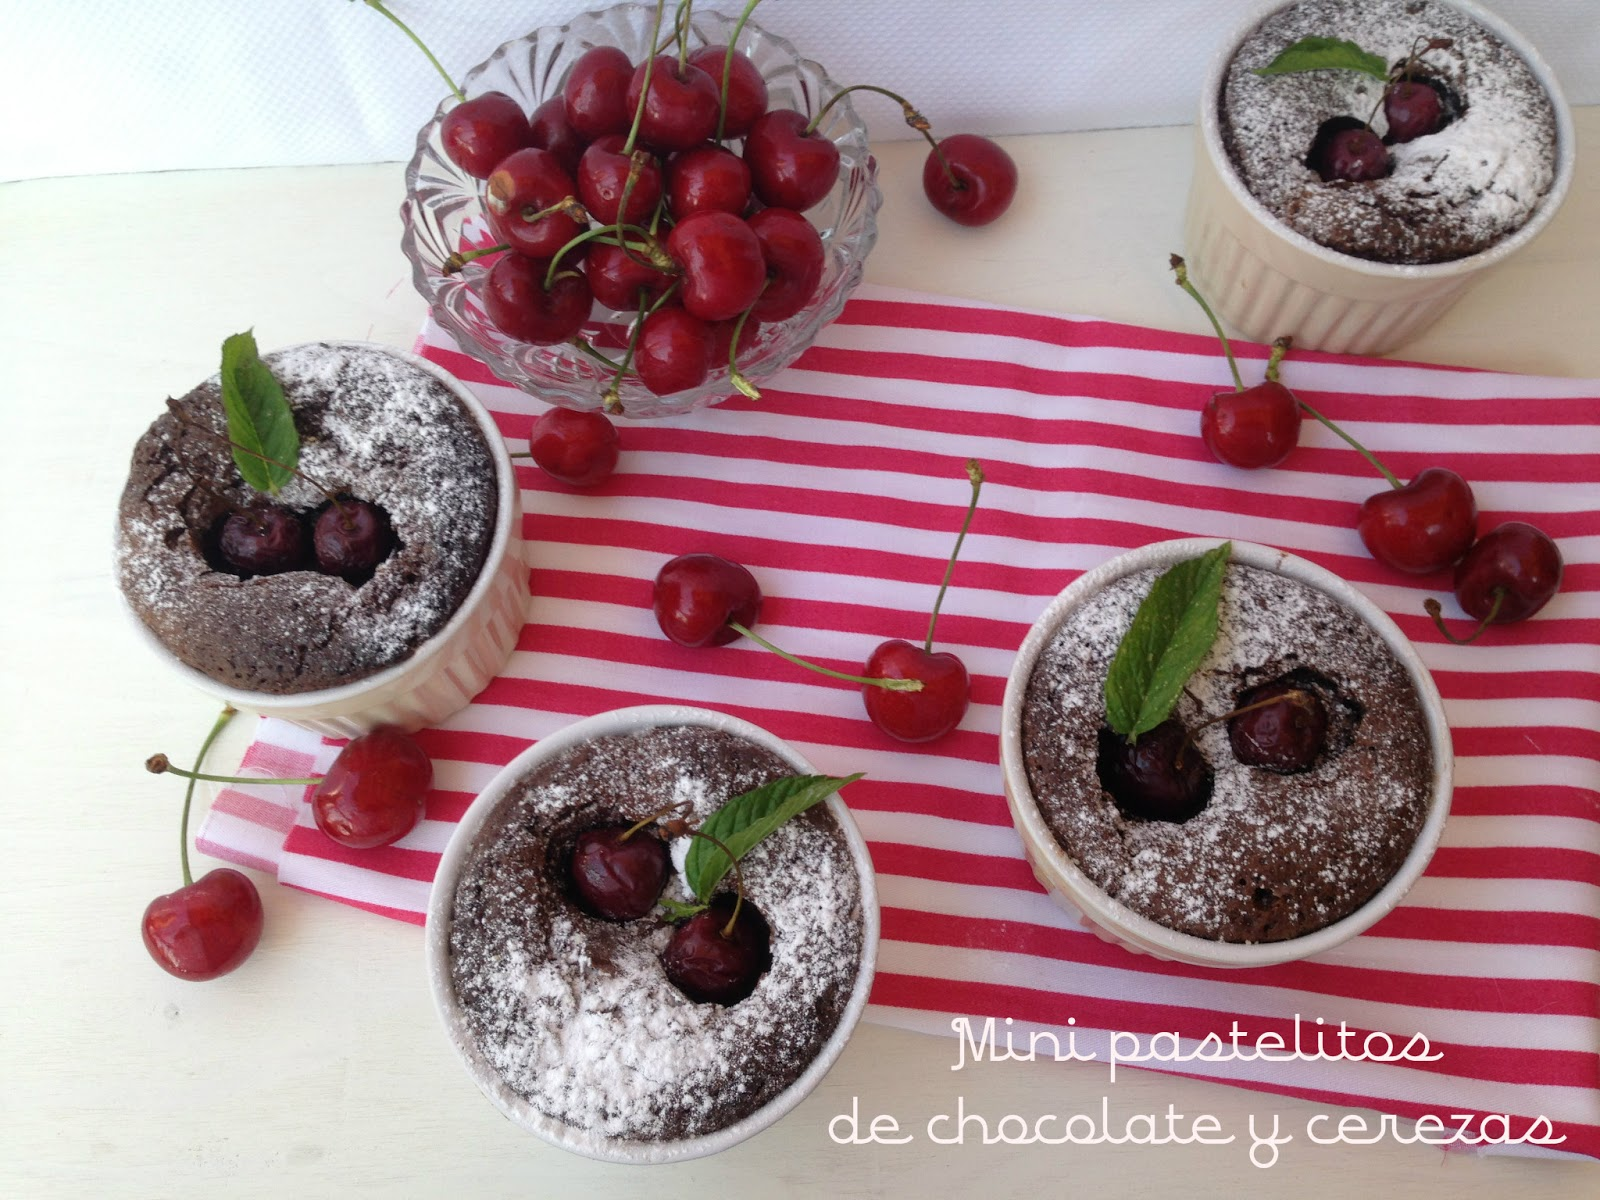 pastelitos-de-chocolate-y-cerezas, chocolate-cherry-cakes